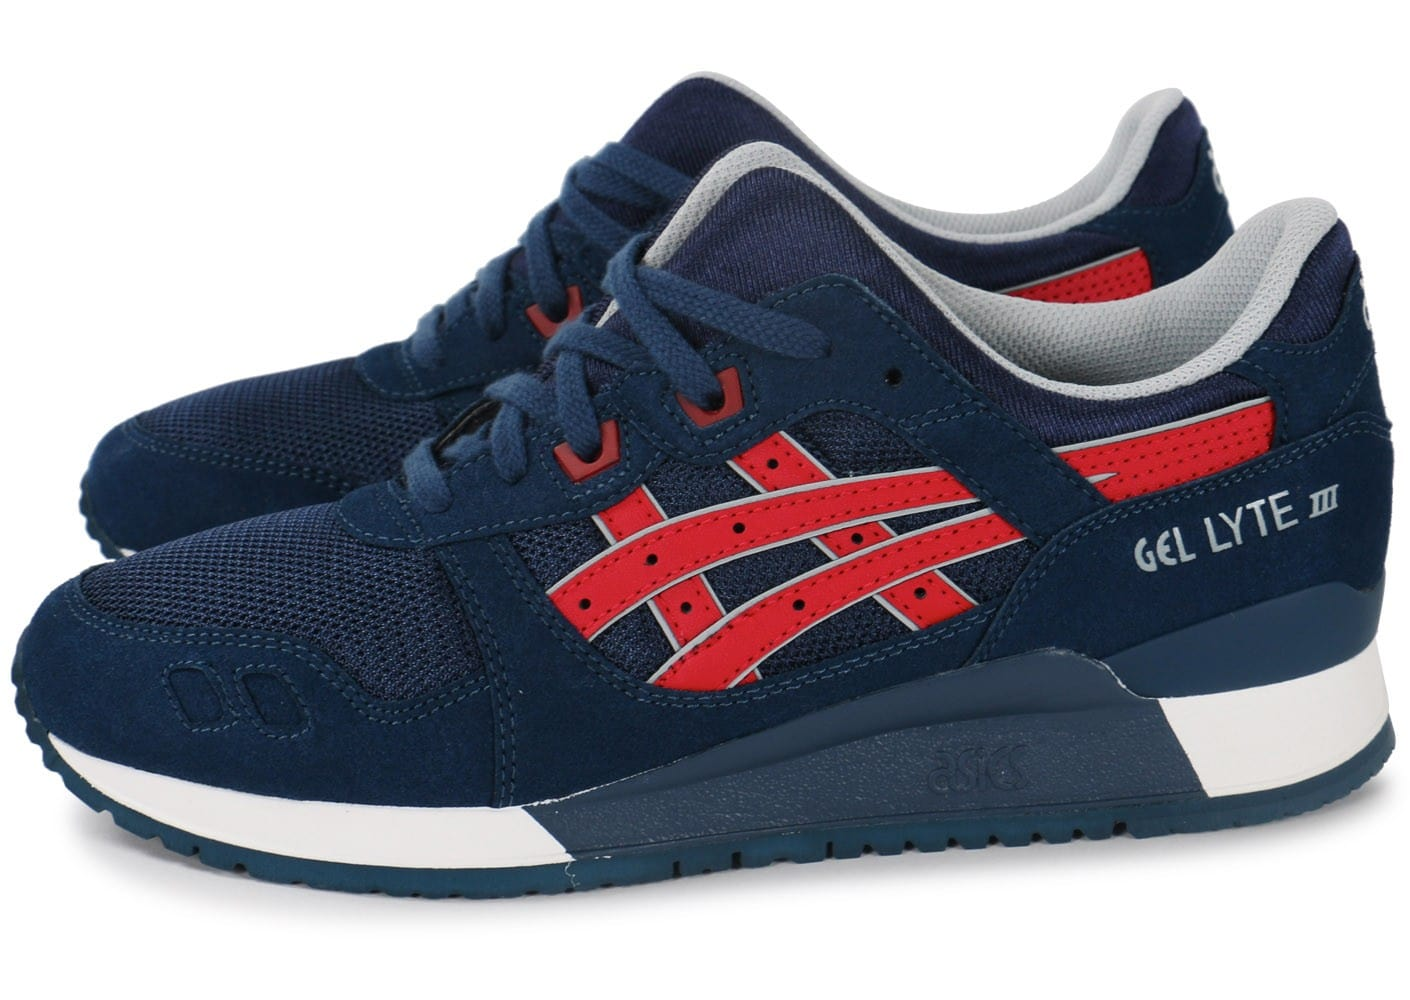 soldes asics gel lyte 3 bleu marine et rouge chaussures homme chausport. Black Bedroom Furniture Sets. Home Design Ideas